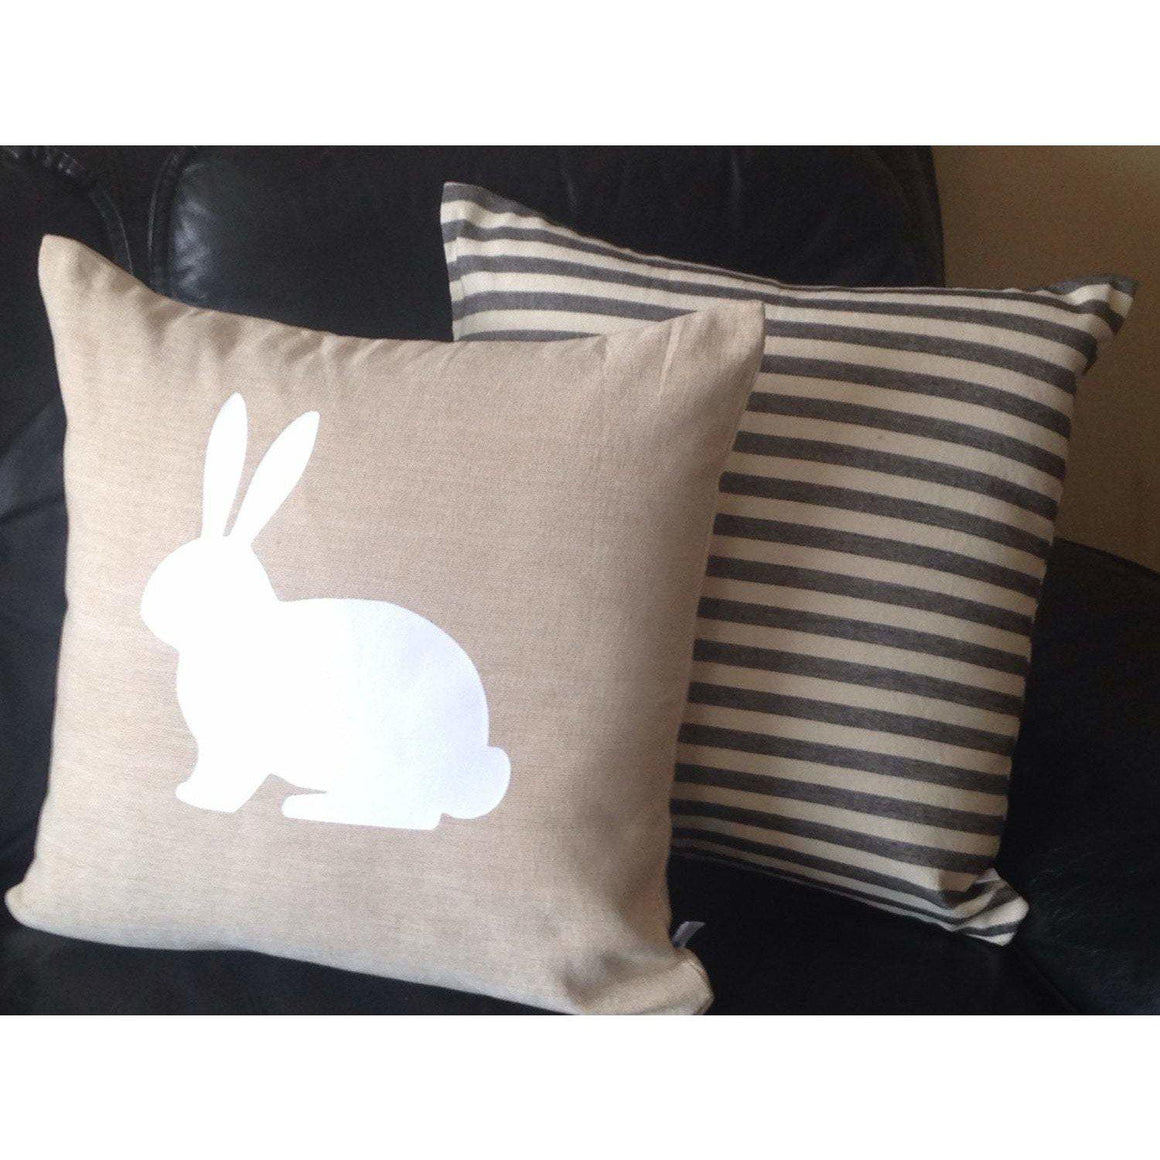 Easter Pillows, Home Decor, Easter Decorative Pillow Covers, Rabbit pillows, Rabbit Pillows,